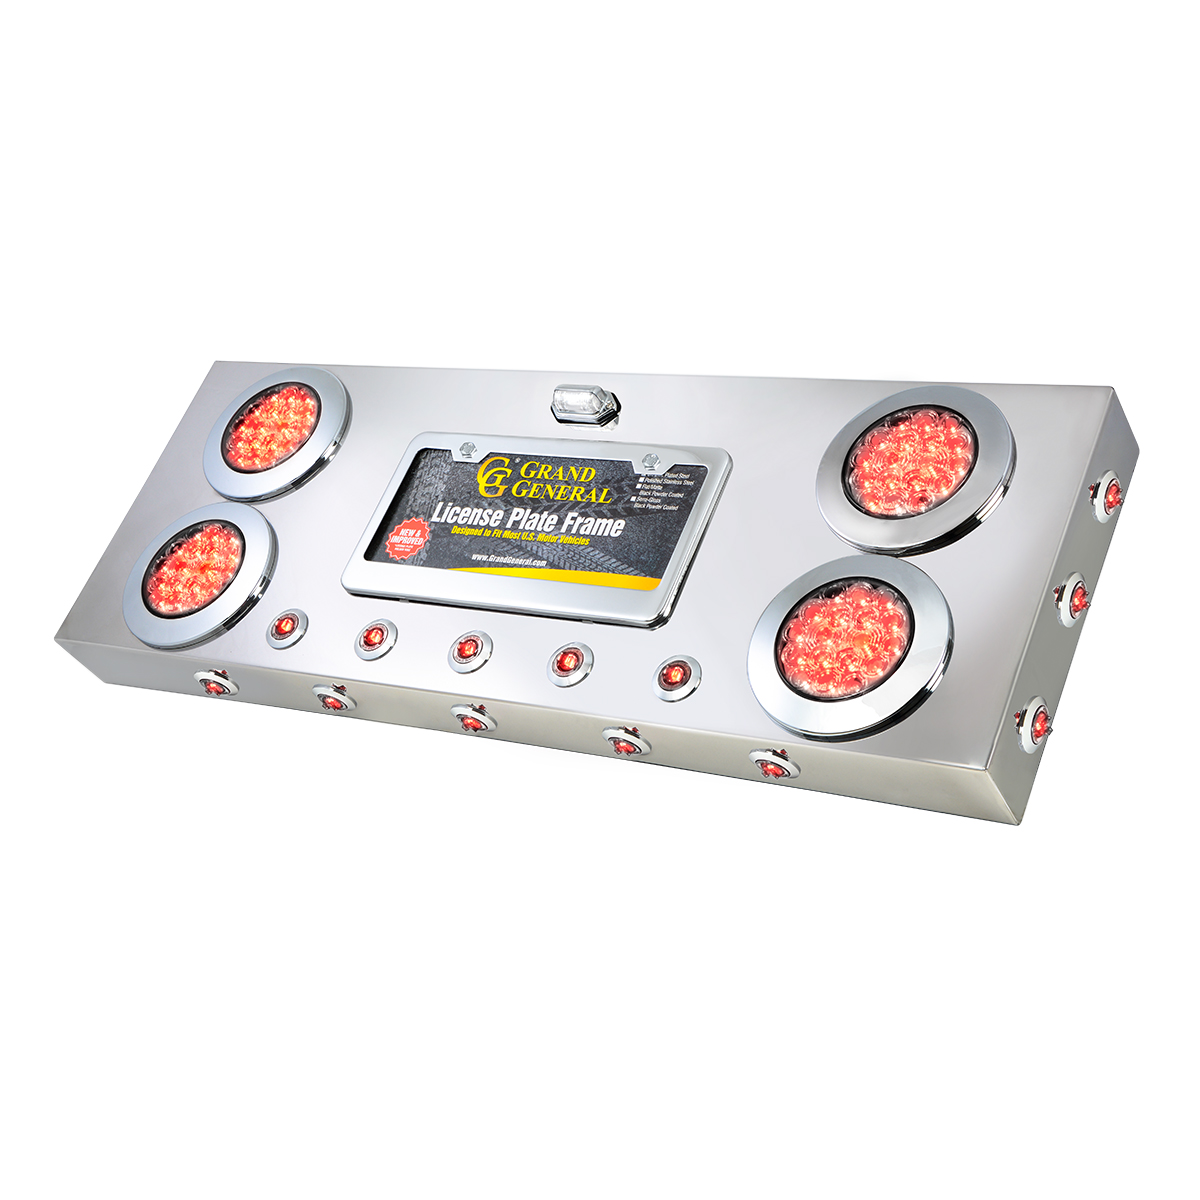 "91303 Stainless Steel Rear Center Light Panel with 4"" & 1"" Dual Function LEDs, License Plate and Under Glow Effect"